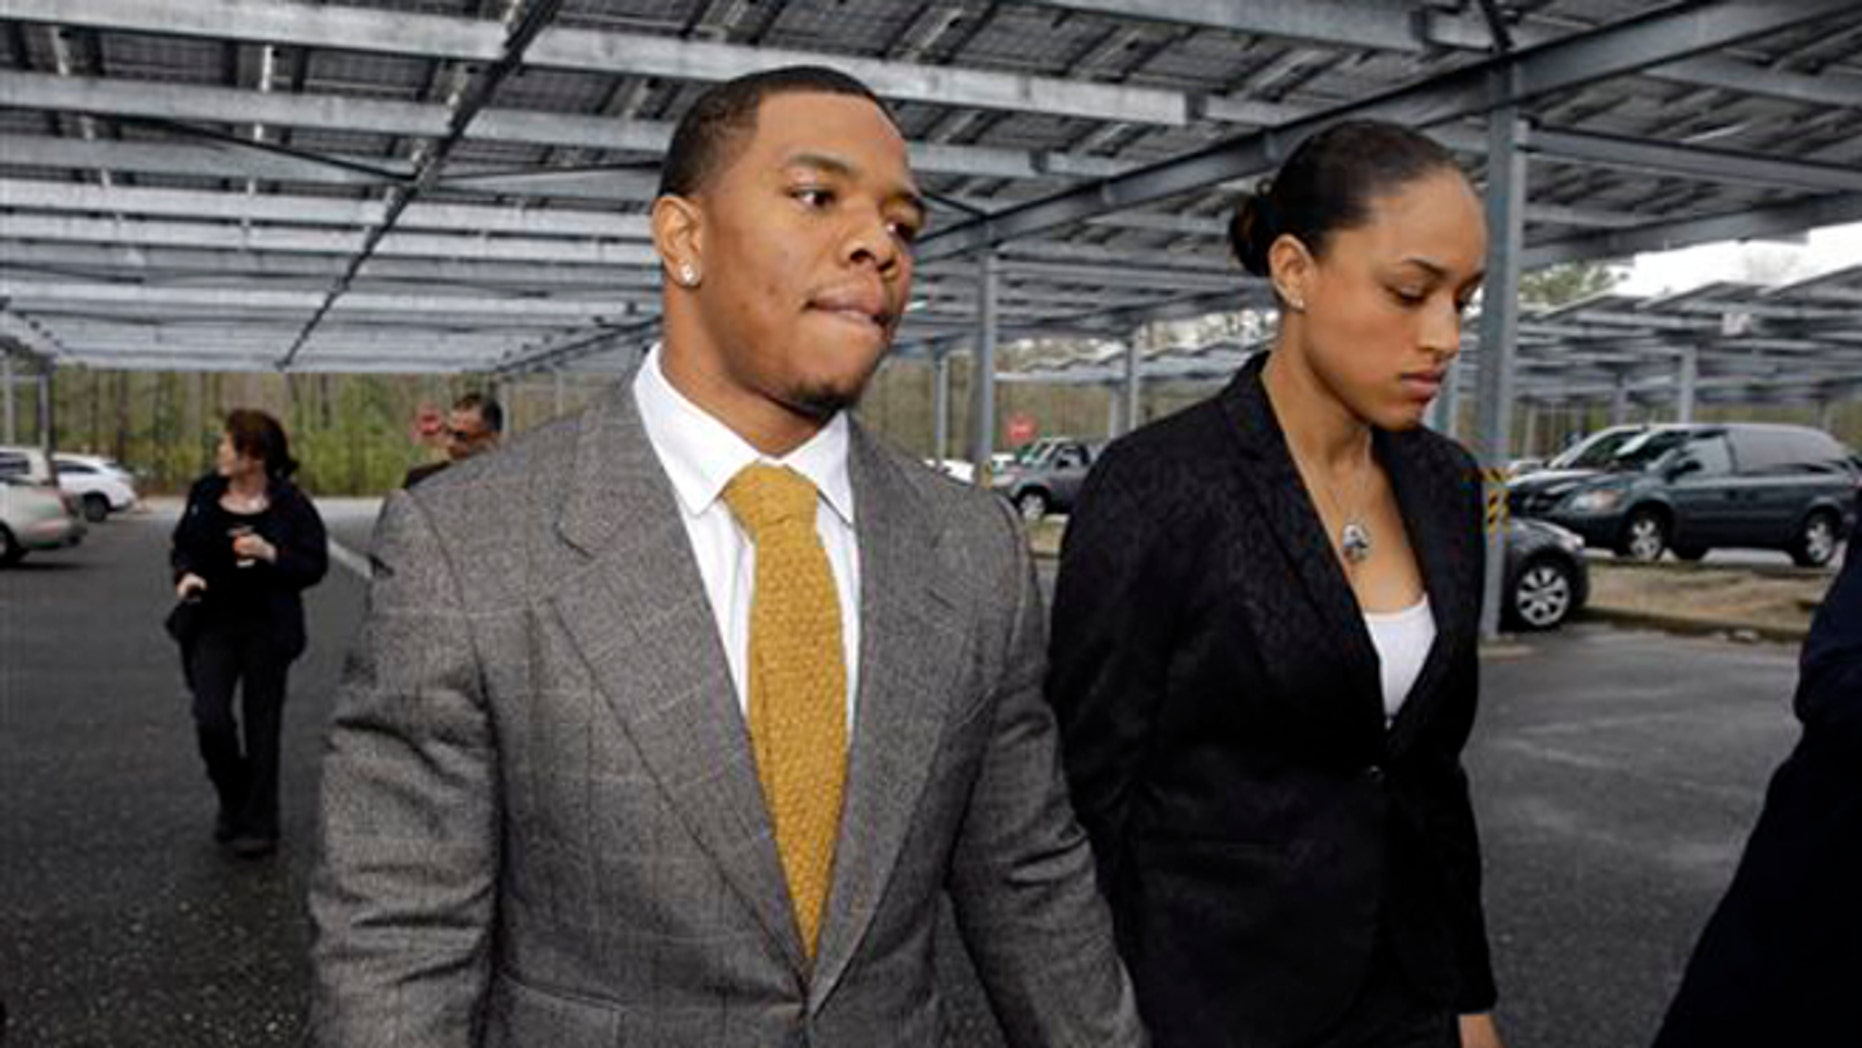 """FILE - In this May 1, 2014, file photo, Baltimore Ravens football player  Ray Rice holds hands with his wife, Janay Palmer, as they arrive at Atlantic County Criminal Courthouse in Mays Landing, N.J. Banter by two """"Fox & Friends"""" hosts about video showing Rice hitting his then future wife is under fire. The hosts, Brian Kilmeade and Steve Doocey, made their on-air comments Monday, Sept. 8, 2014, while discussing newly released elevator video showing Rice hitting Janay Palmer in February. (AP Photo/Mel Evans, File)"""